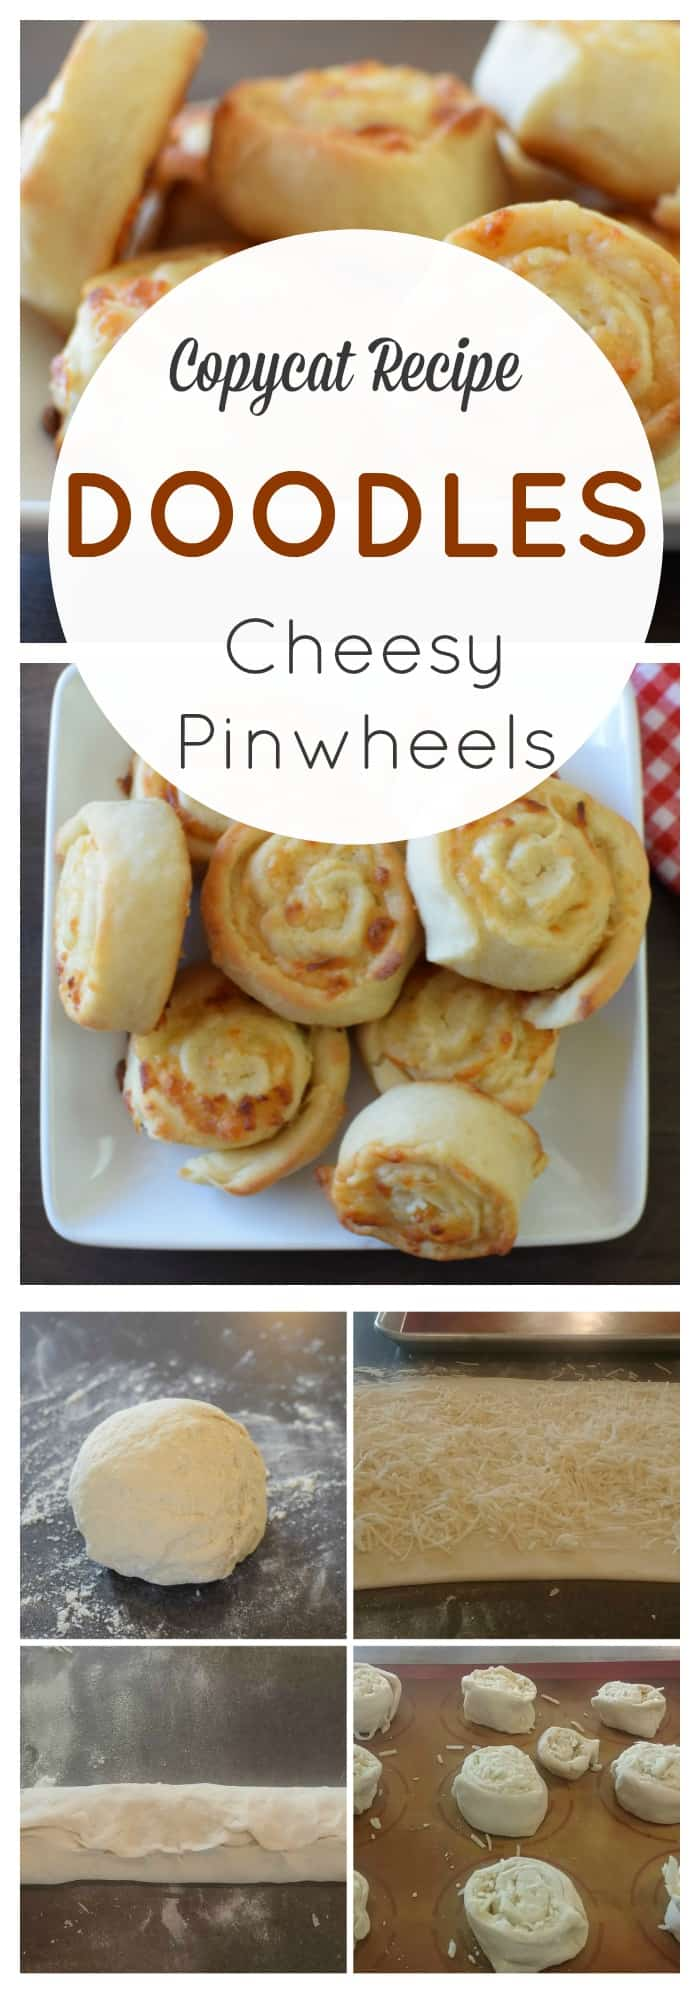 Recipes and food cheesy pinwheels doodles copycat recipe